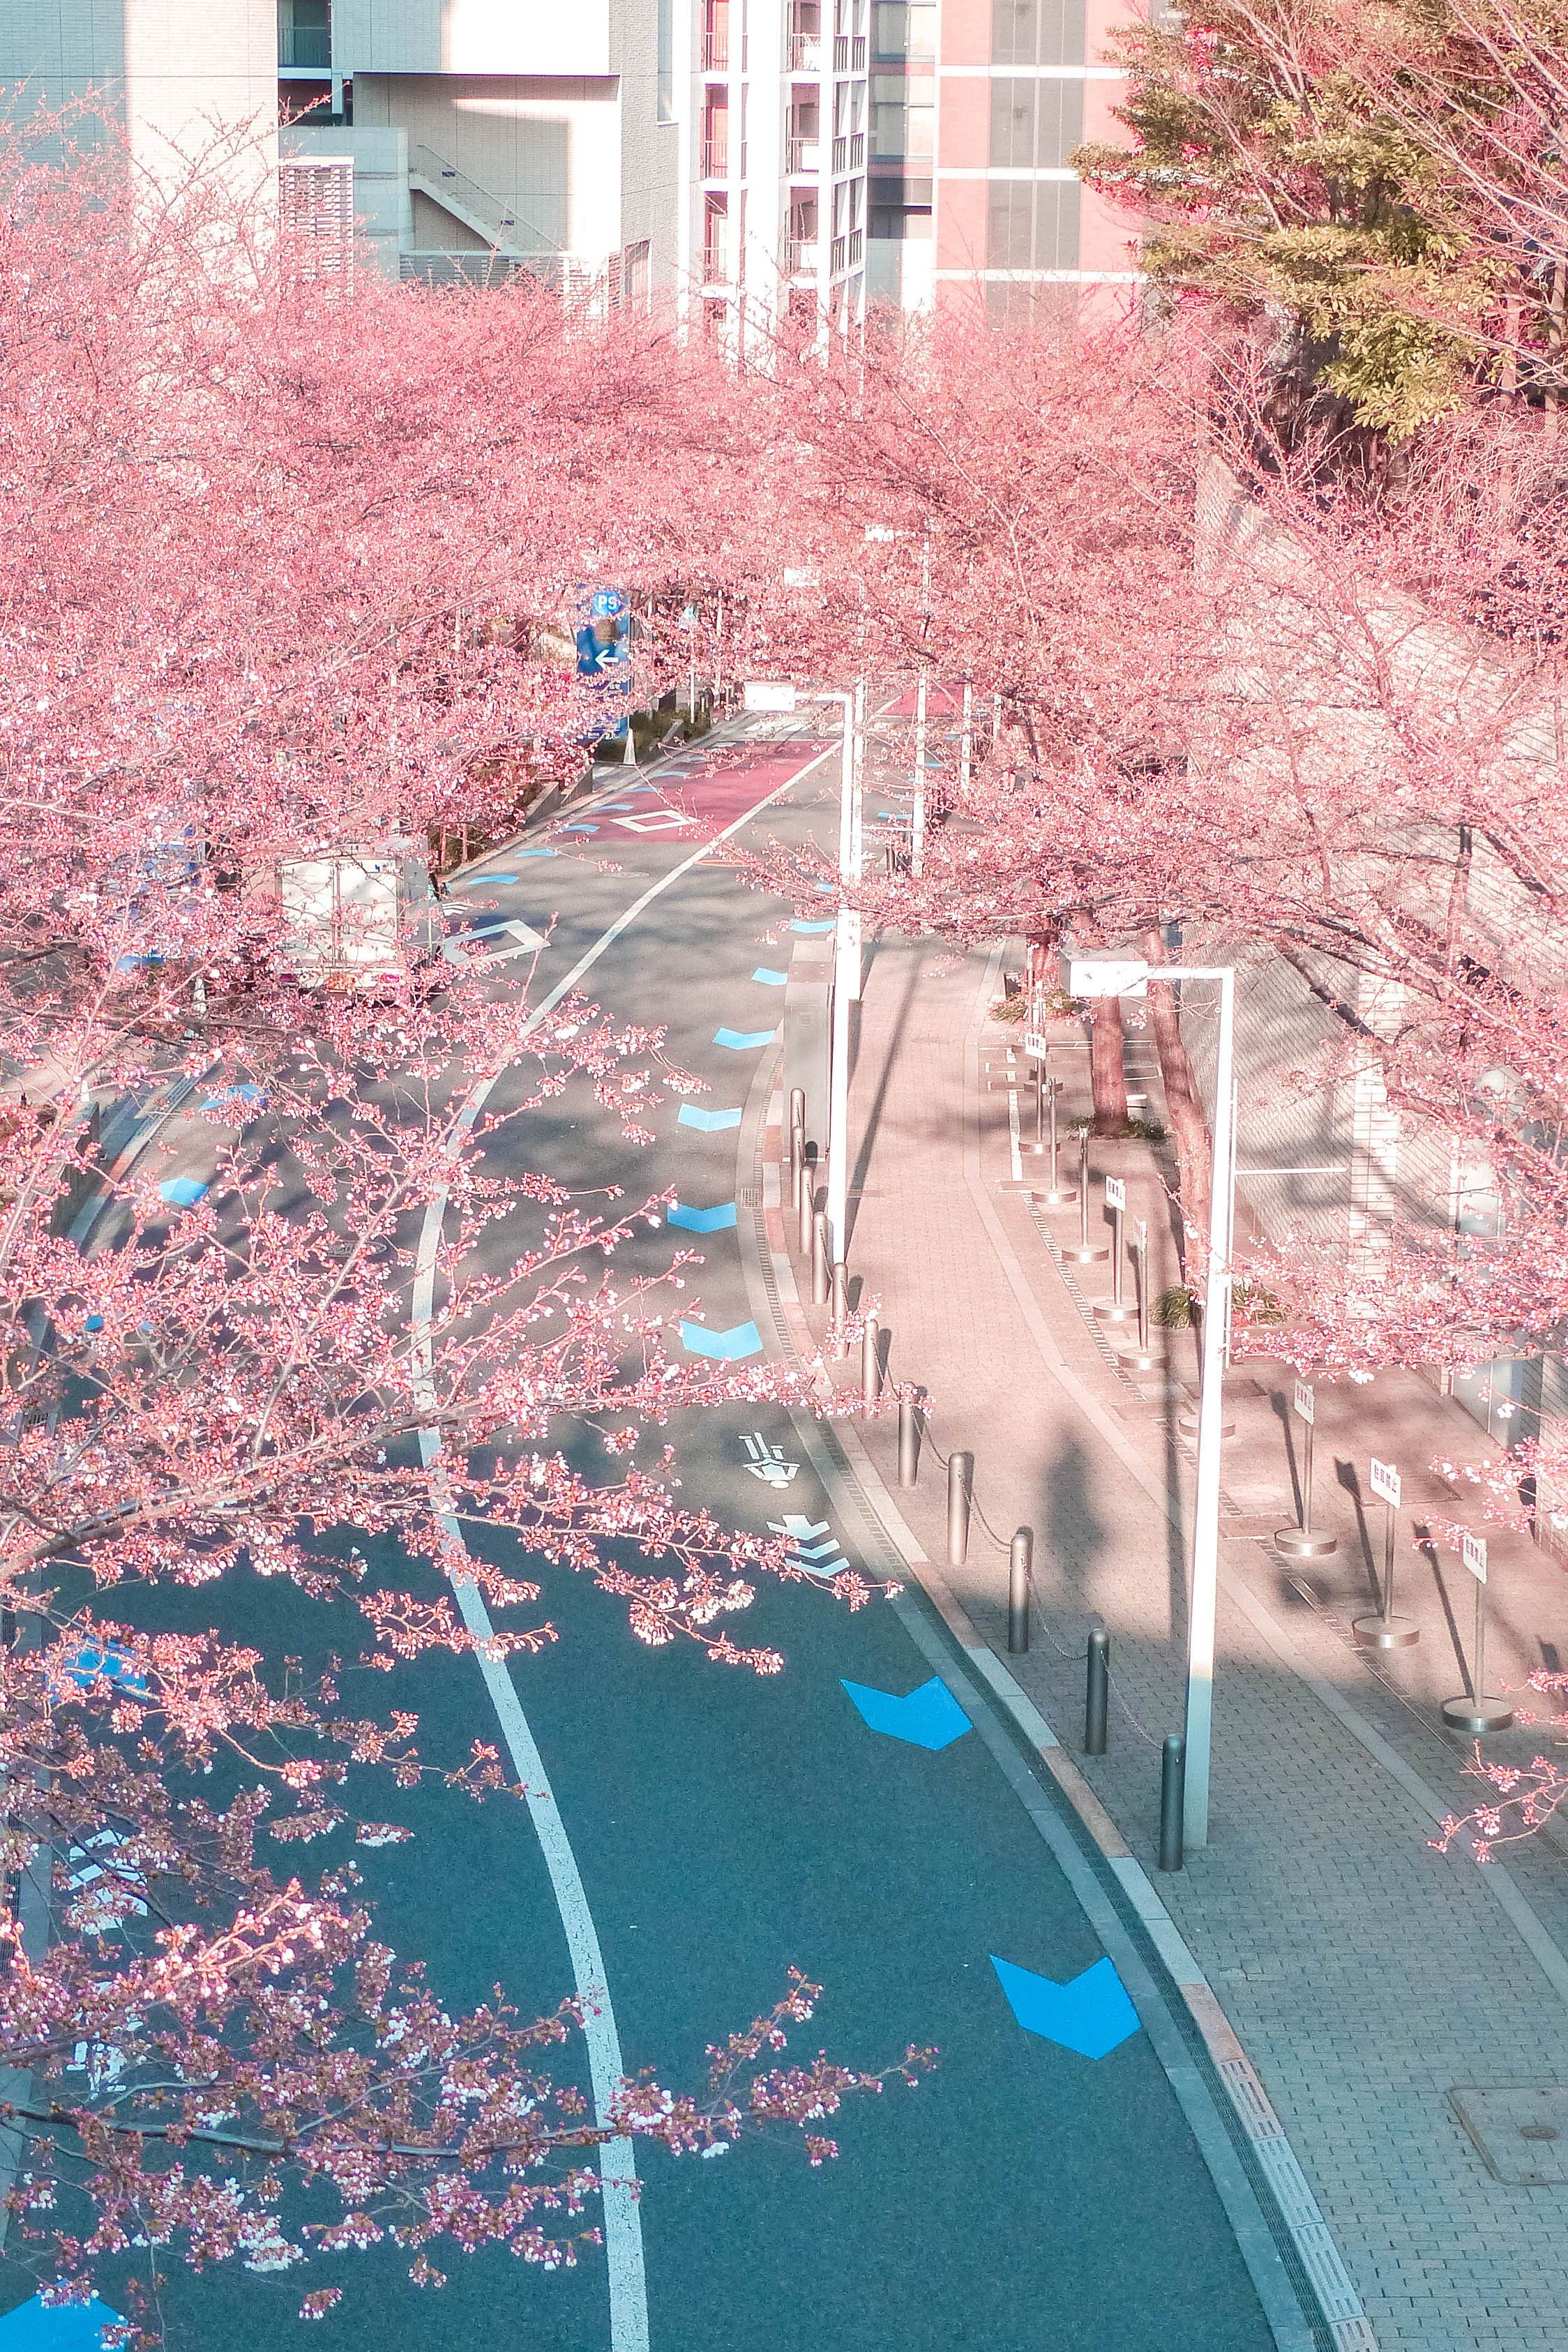 25 Best Places To See Cherry Blossoms In Tokyo Free Guide Anime Scenery Wallpaper Scenery Wallpaper Aesthetic Backgrounds